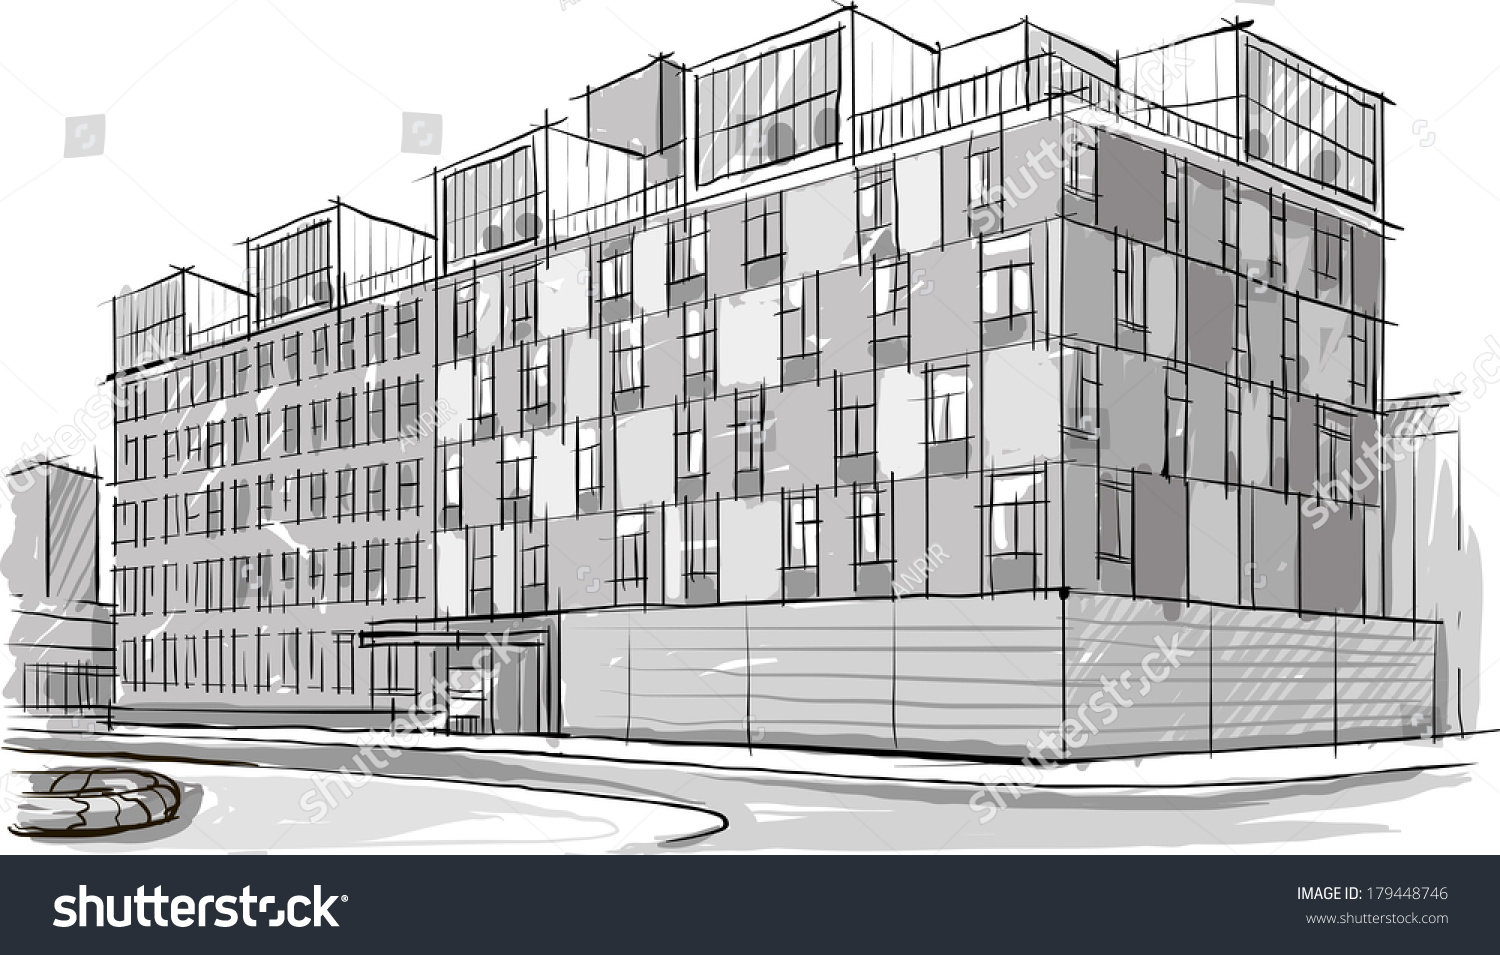 Architecture Sketch Drawing Buildingcity Stock Vector ... |City Building Sketches